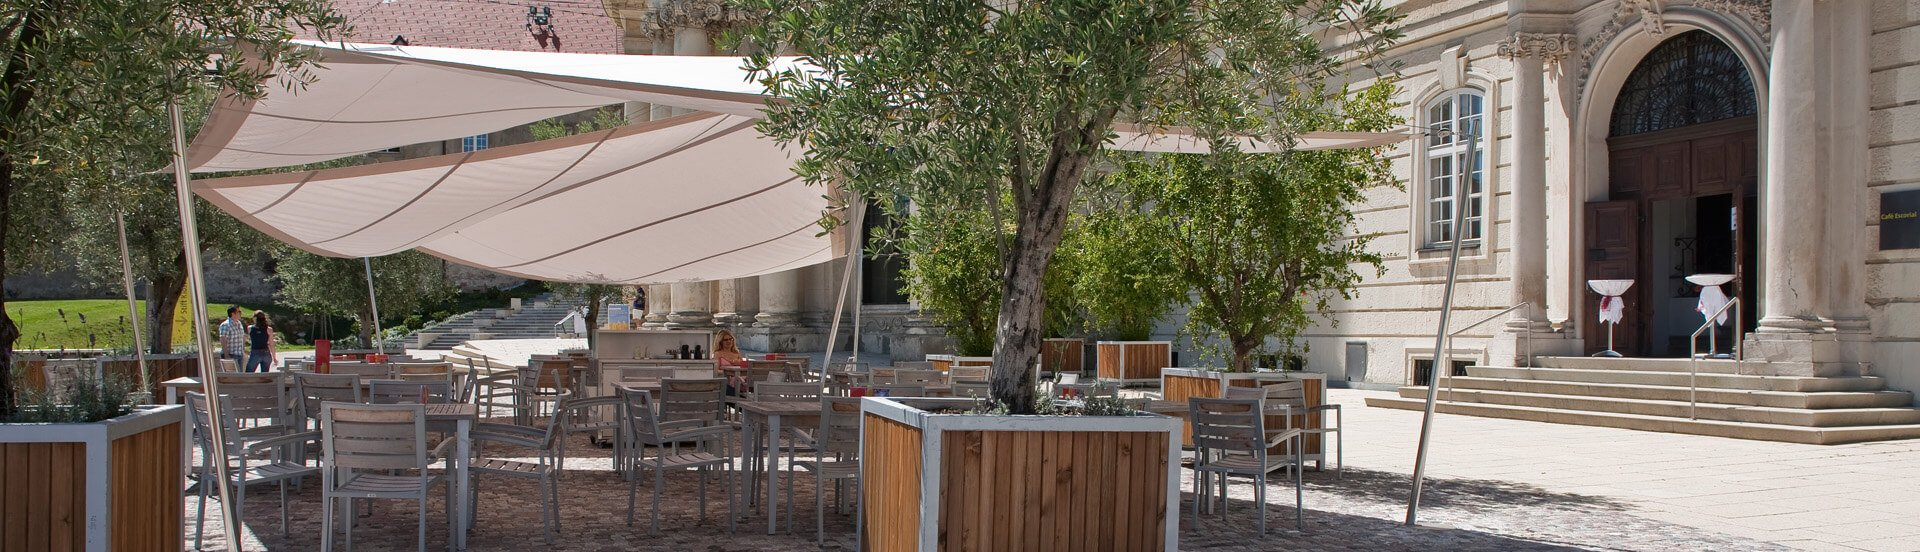 Terrasse Cafe Escorial